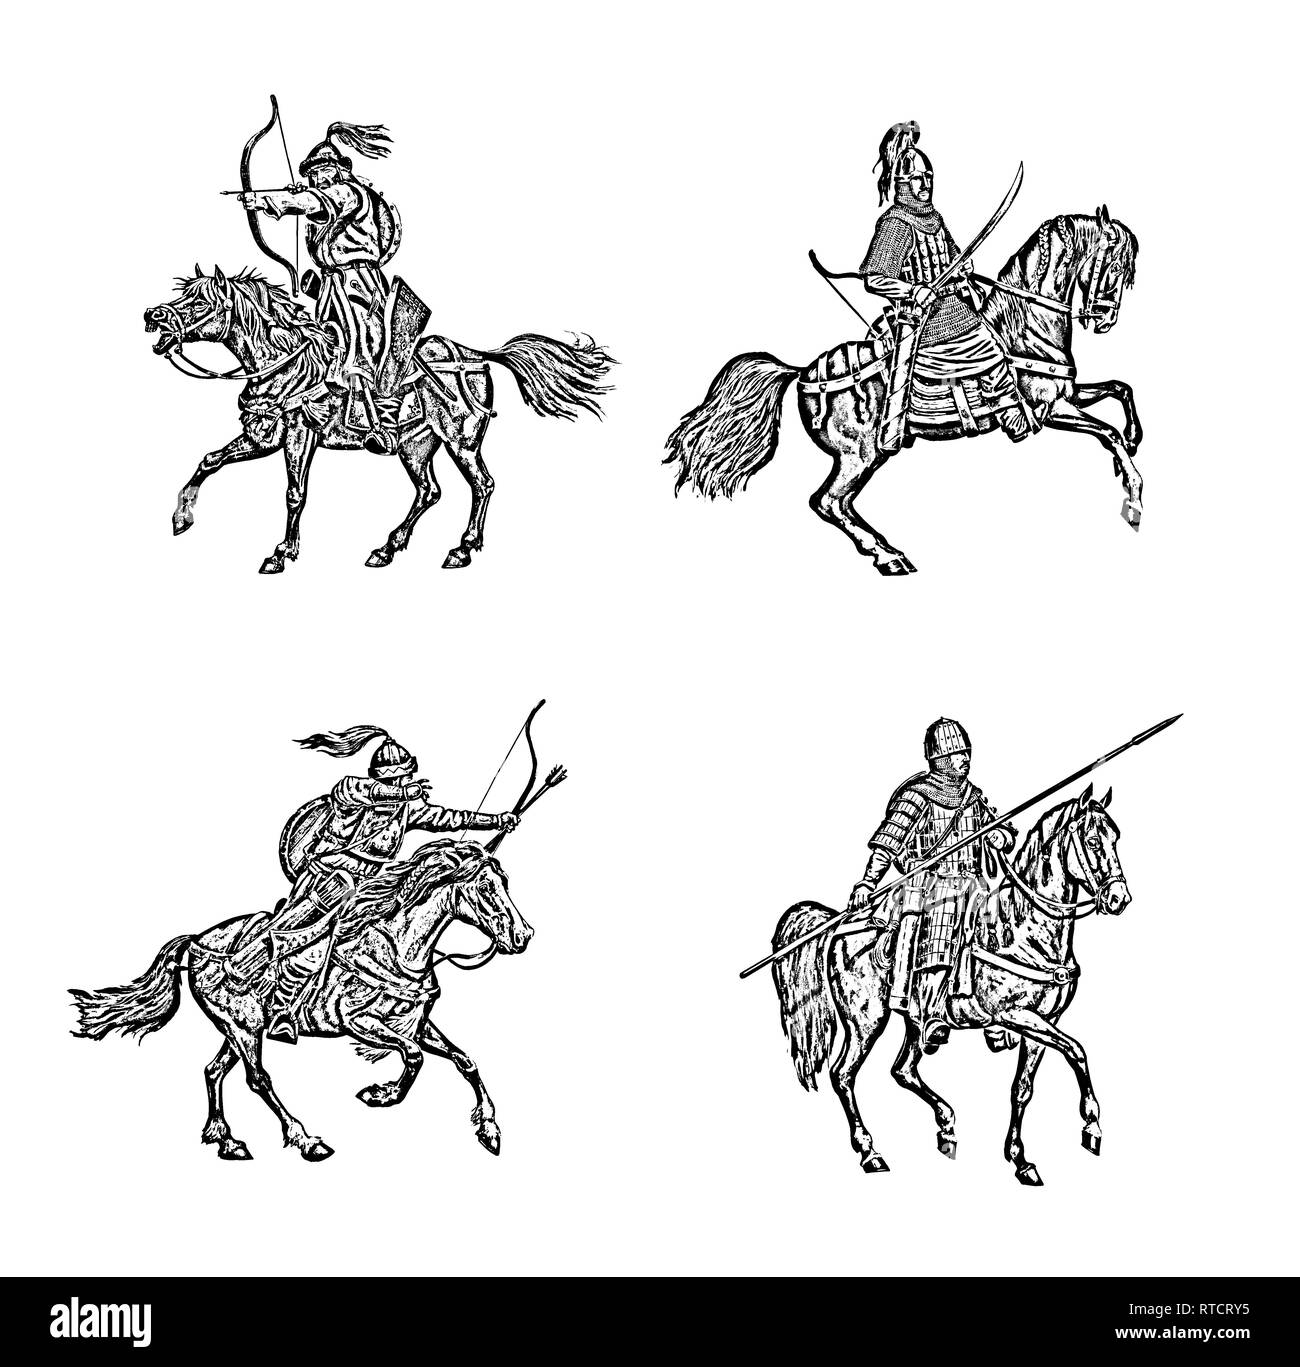 Medieval mounted knights. Heavy armored magyar (hungarian) riders. - Stock Image